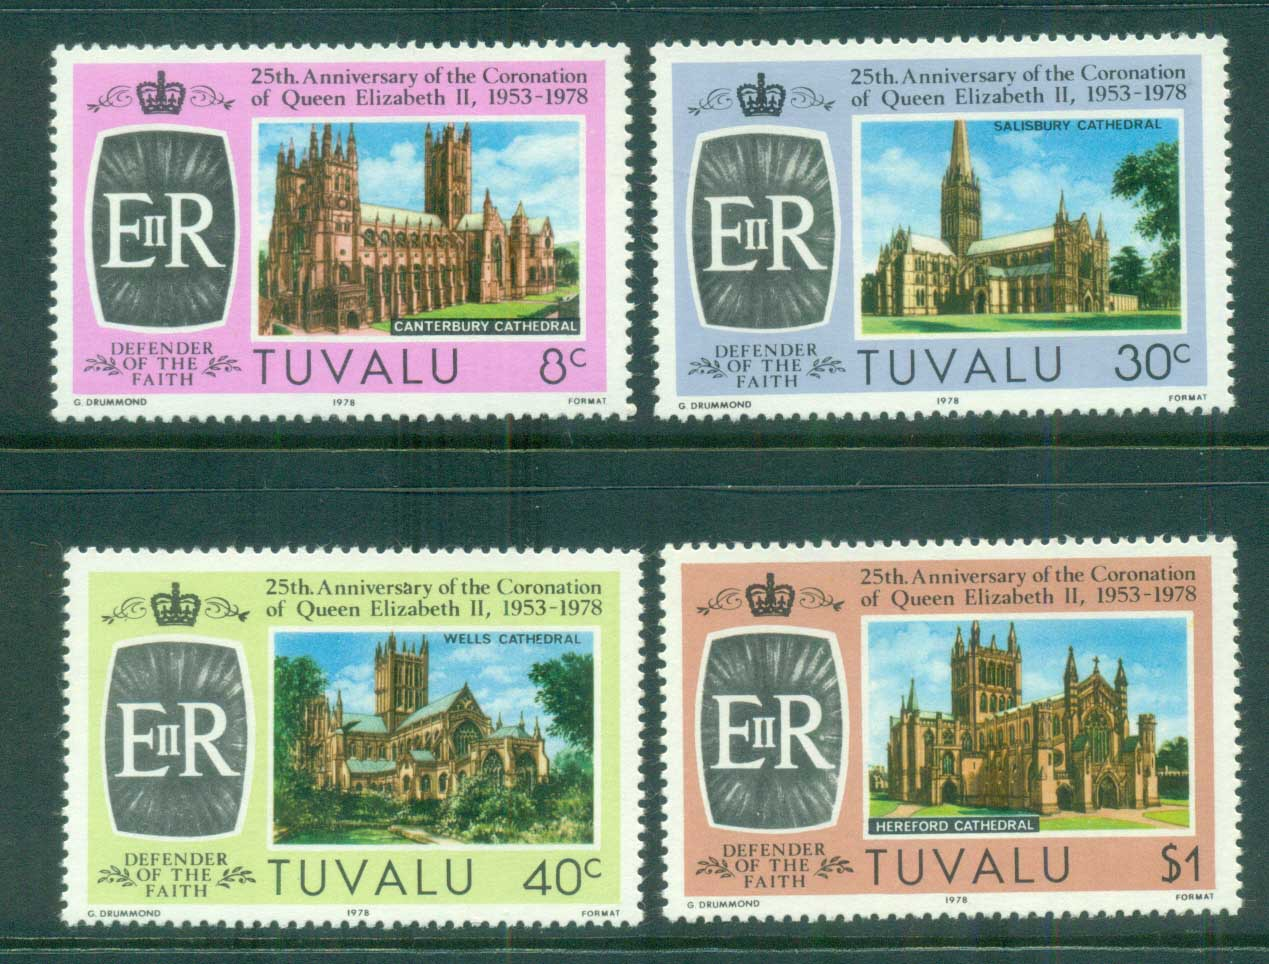 Tuvalu 1978 QEII Coronation, 25th Anniversary , Royalty MUH